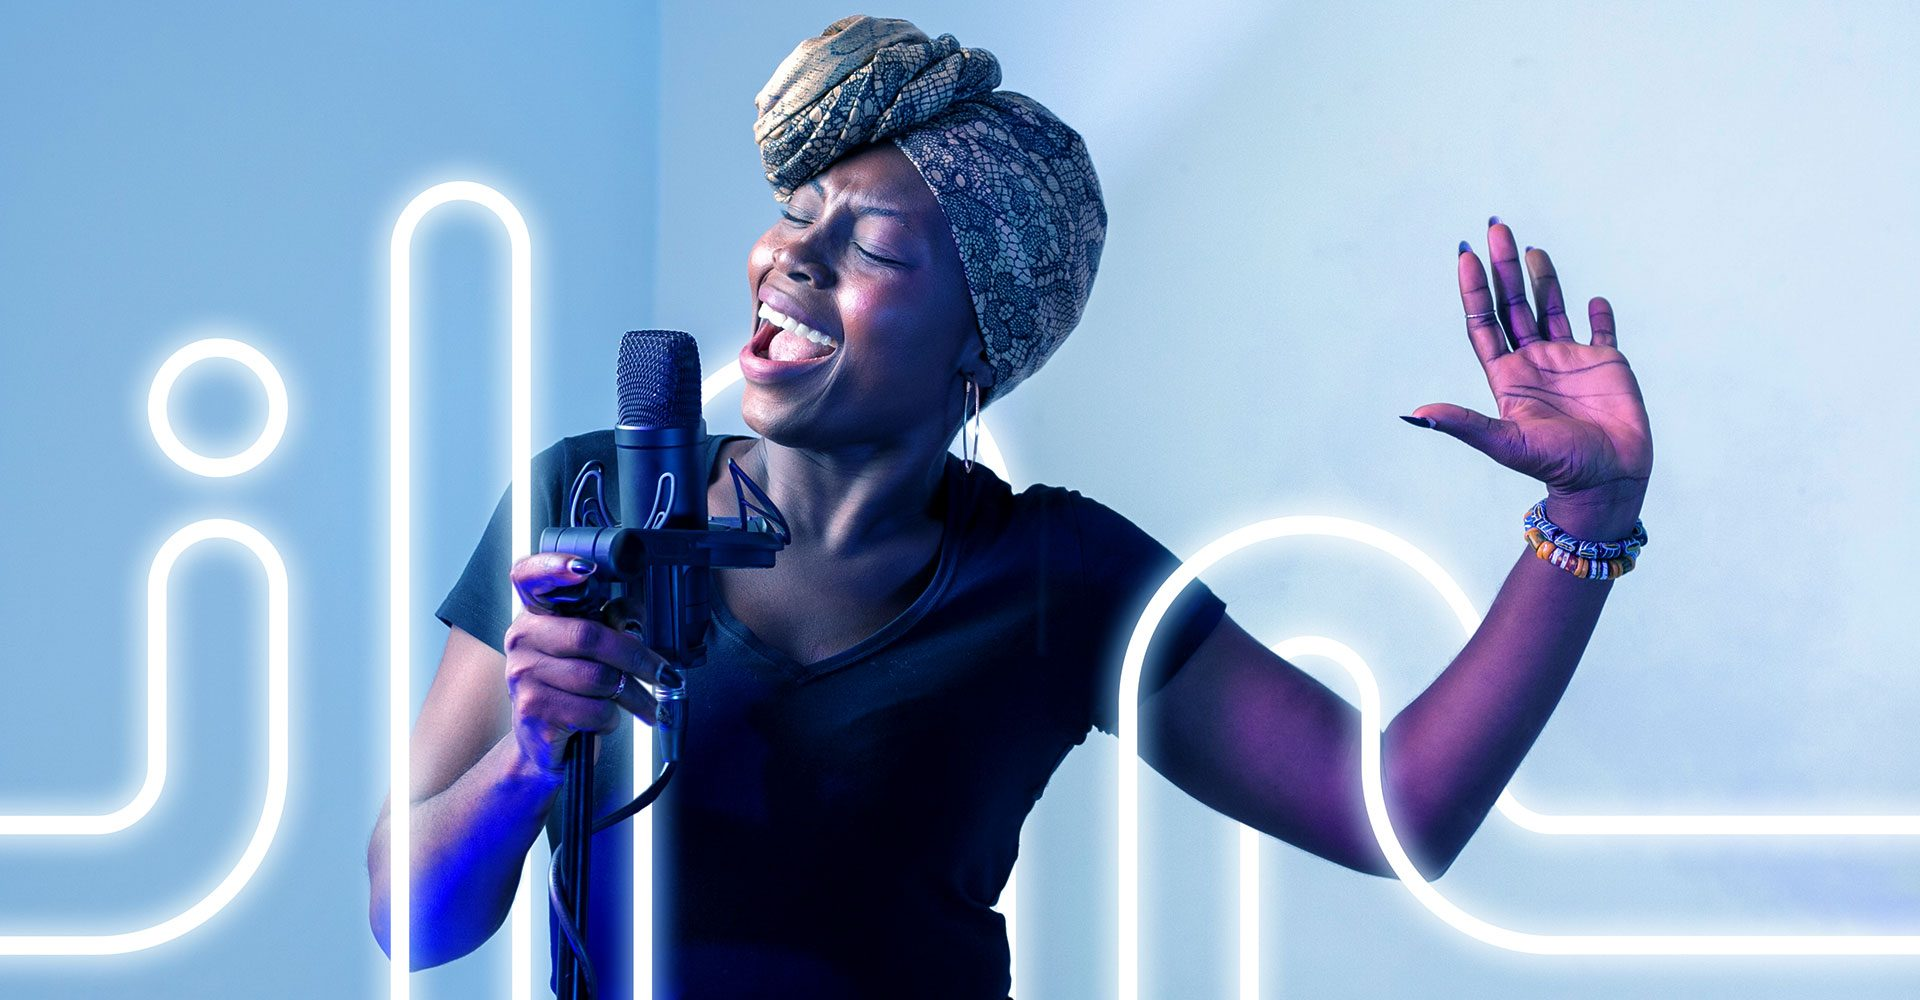 Neon Pink and Neon Blue Music Production Equipment